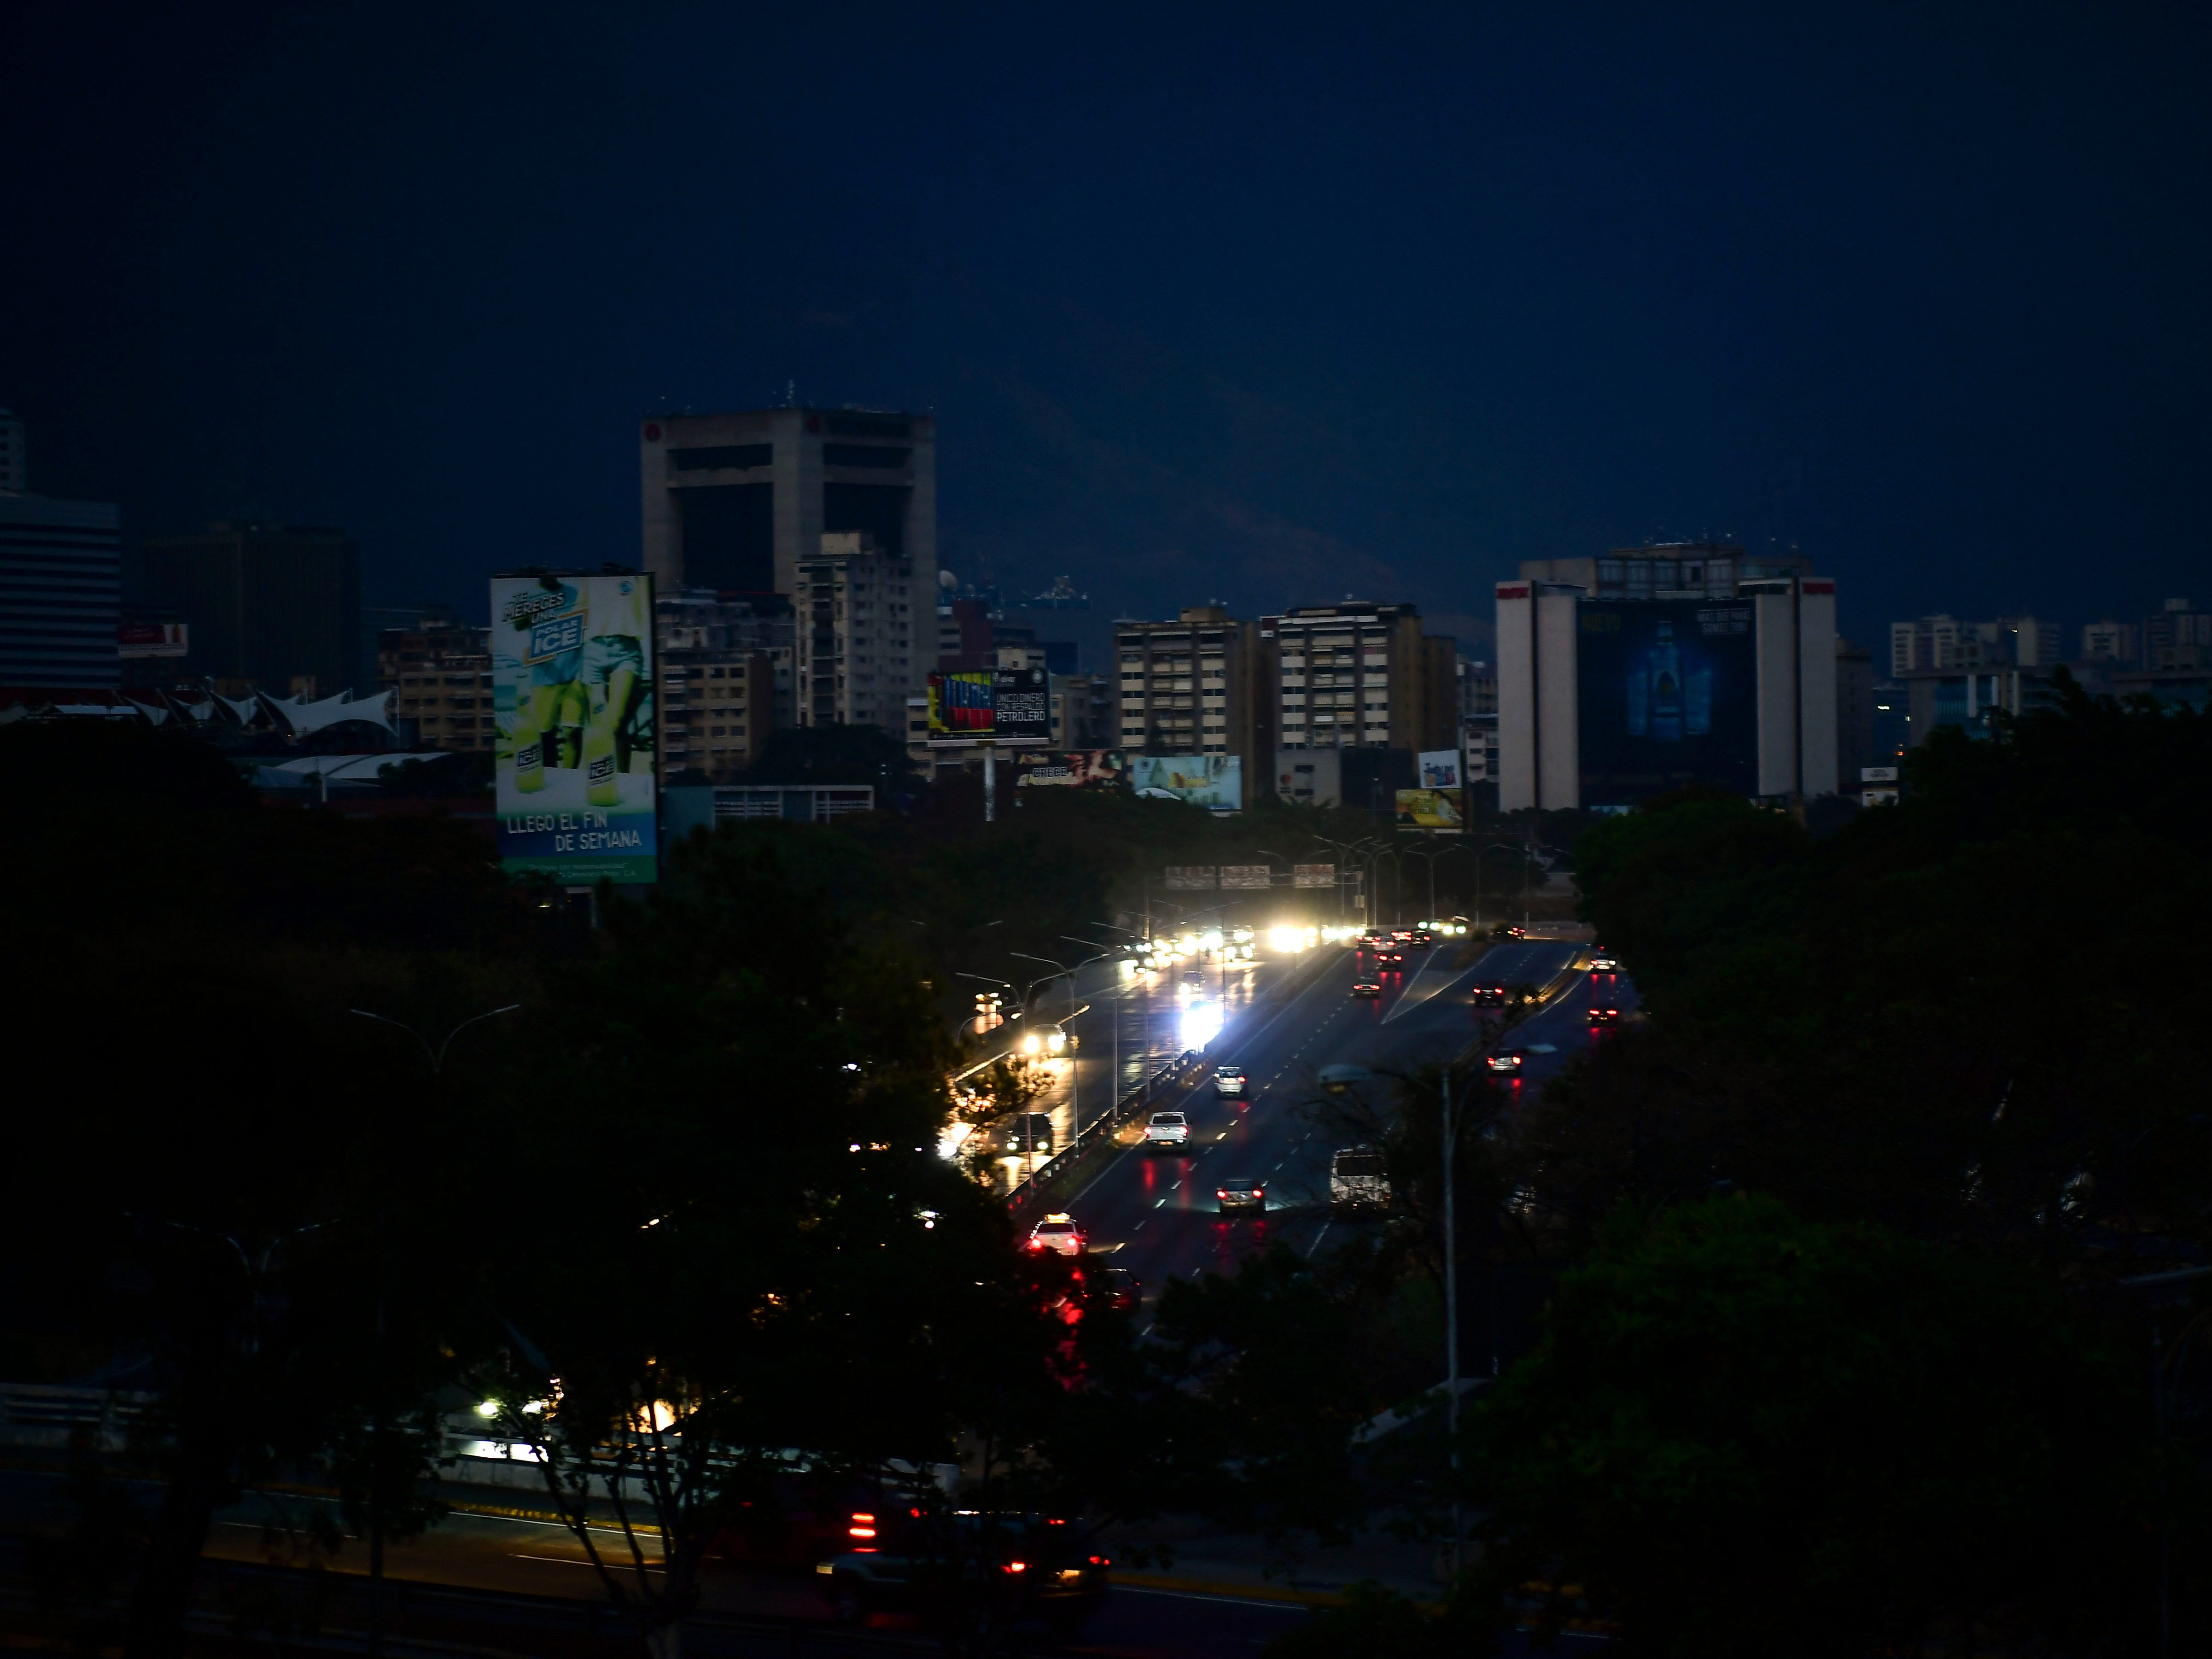 View of Caracas taken on March 8, 2019 during the worst power outage in Venezuela's history.